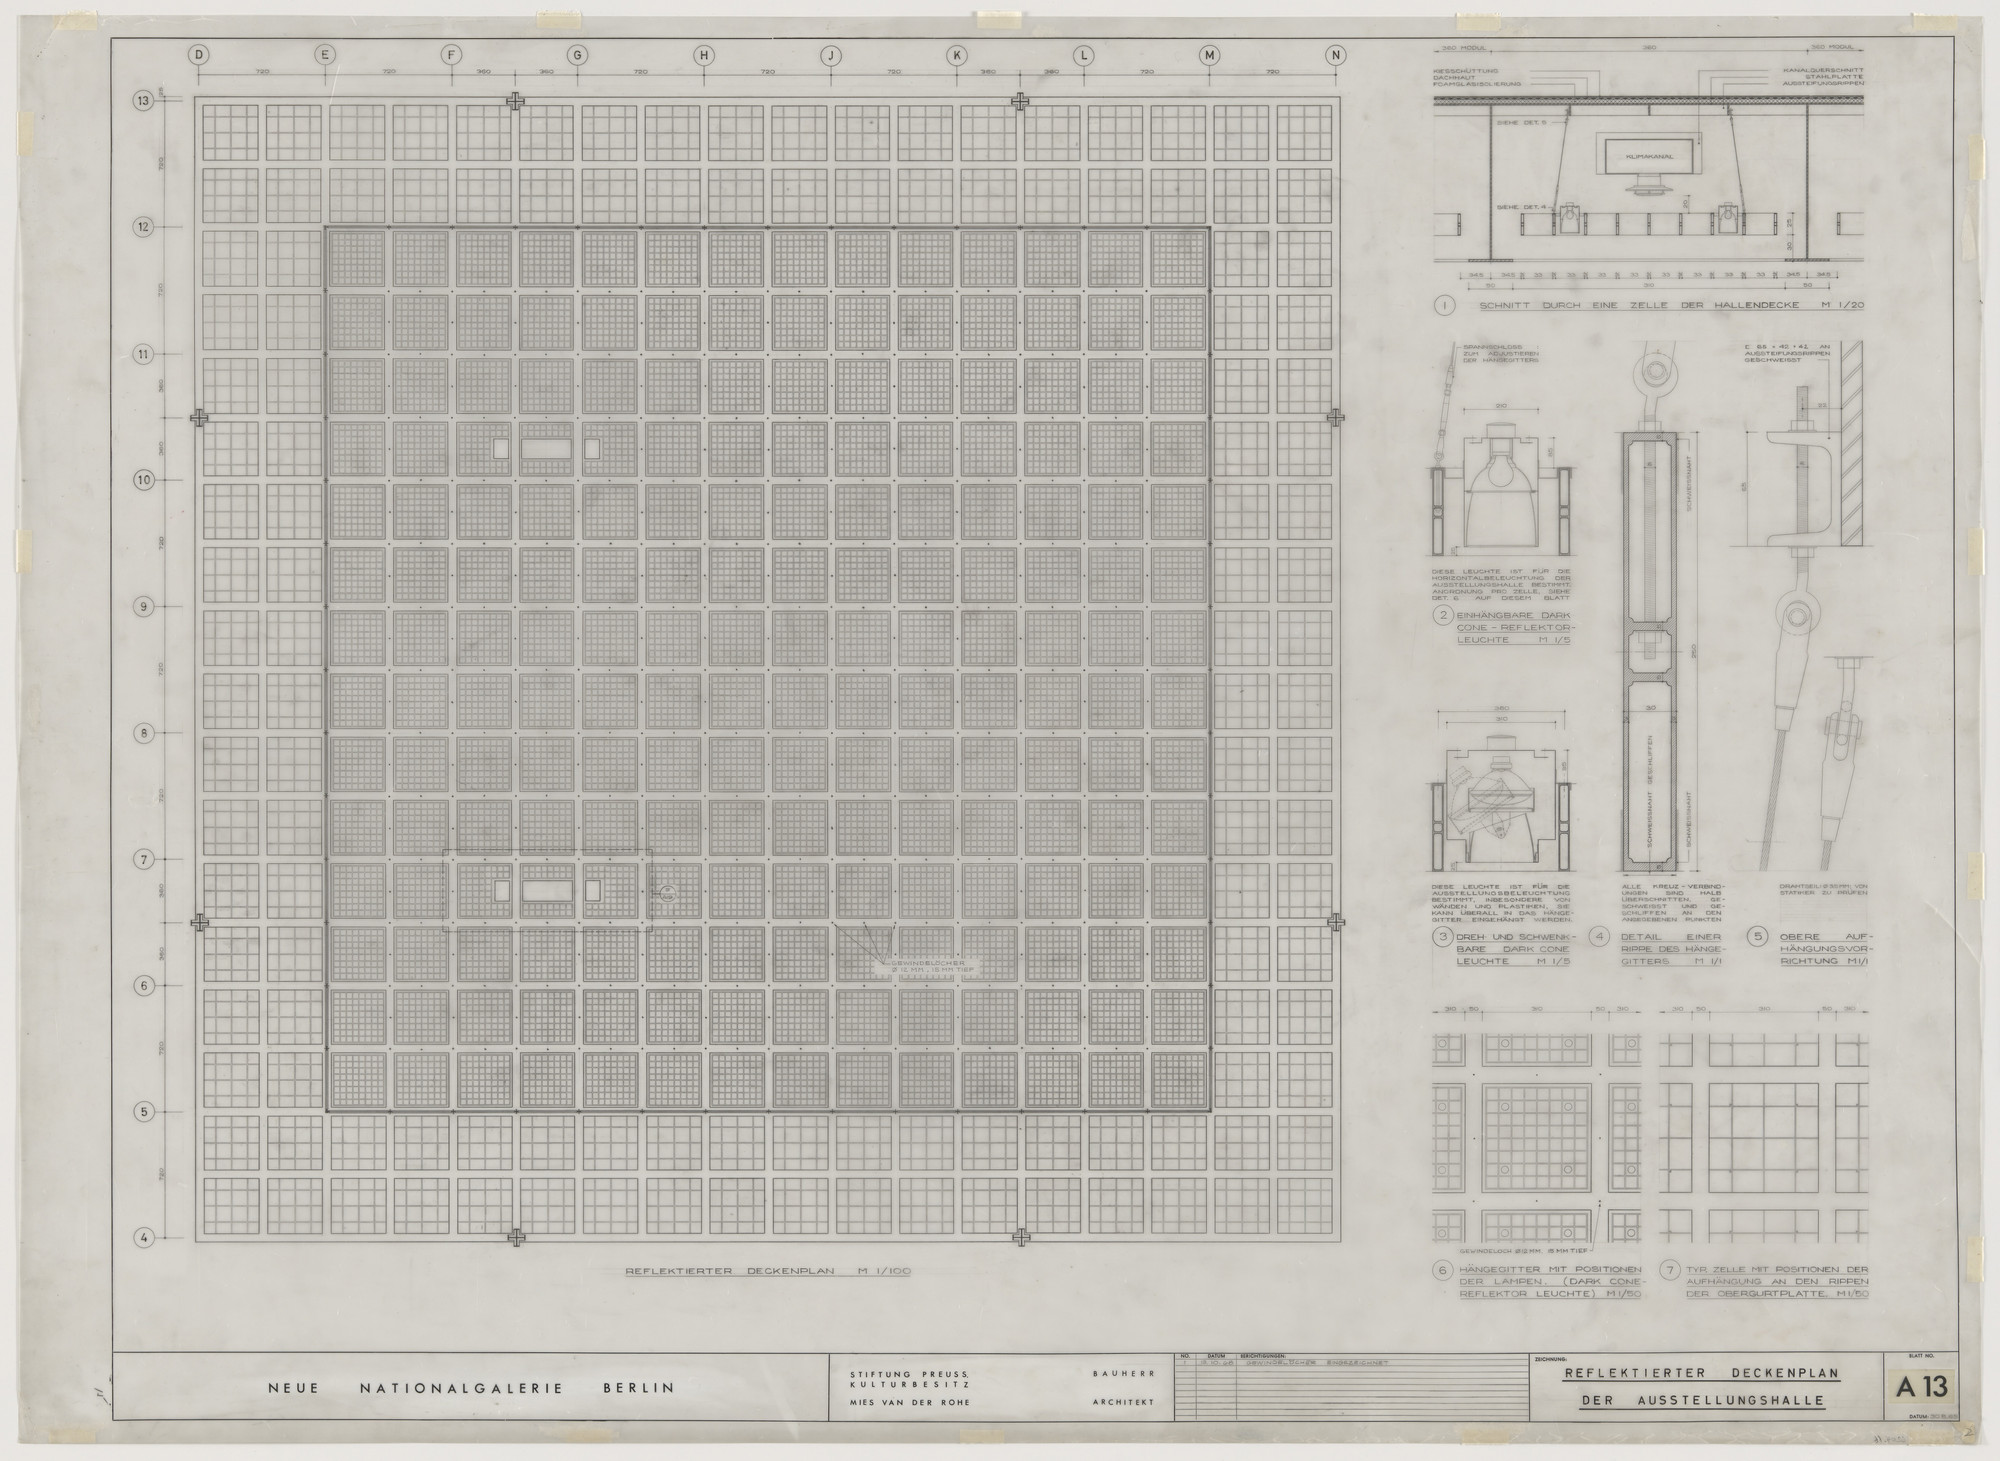 Ludwig Mies van der Rohe. New National Gallery, Berlin, Germany (Reflected ceiling plan at exhibition hall). c. 1962-68